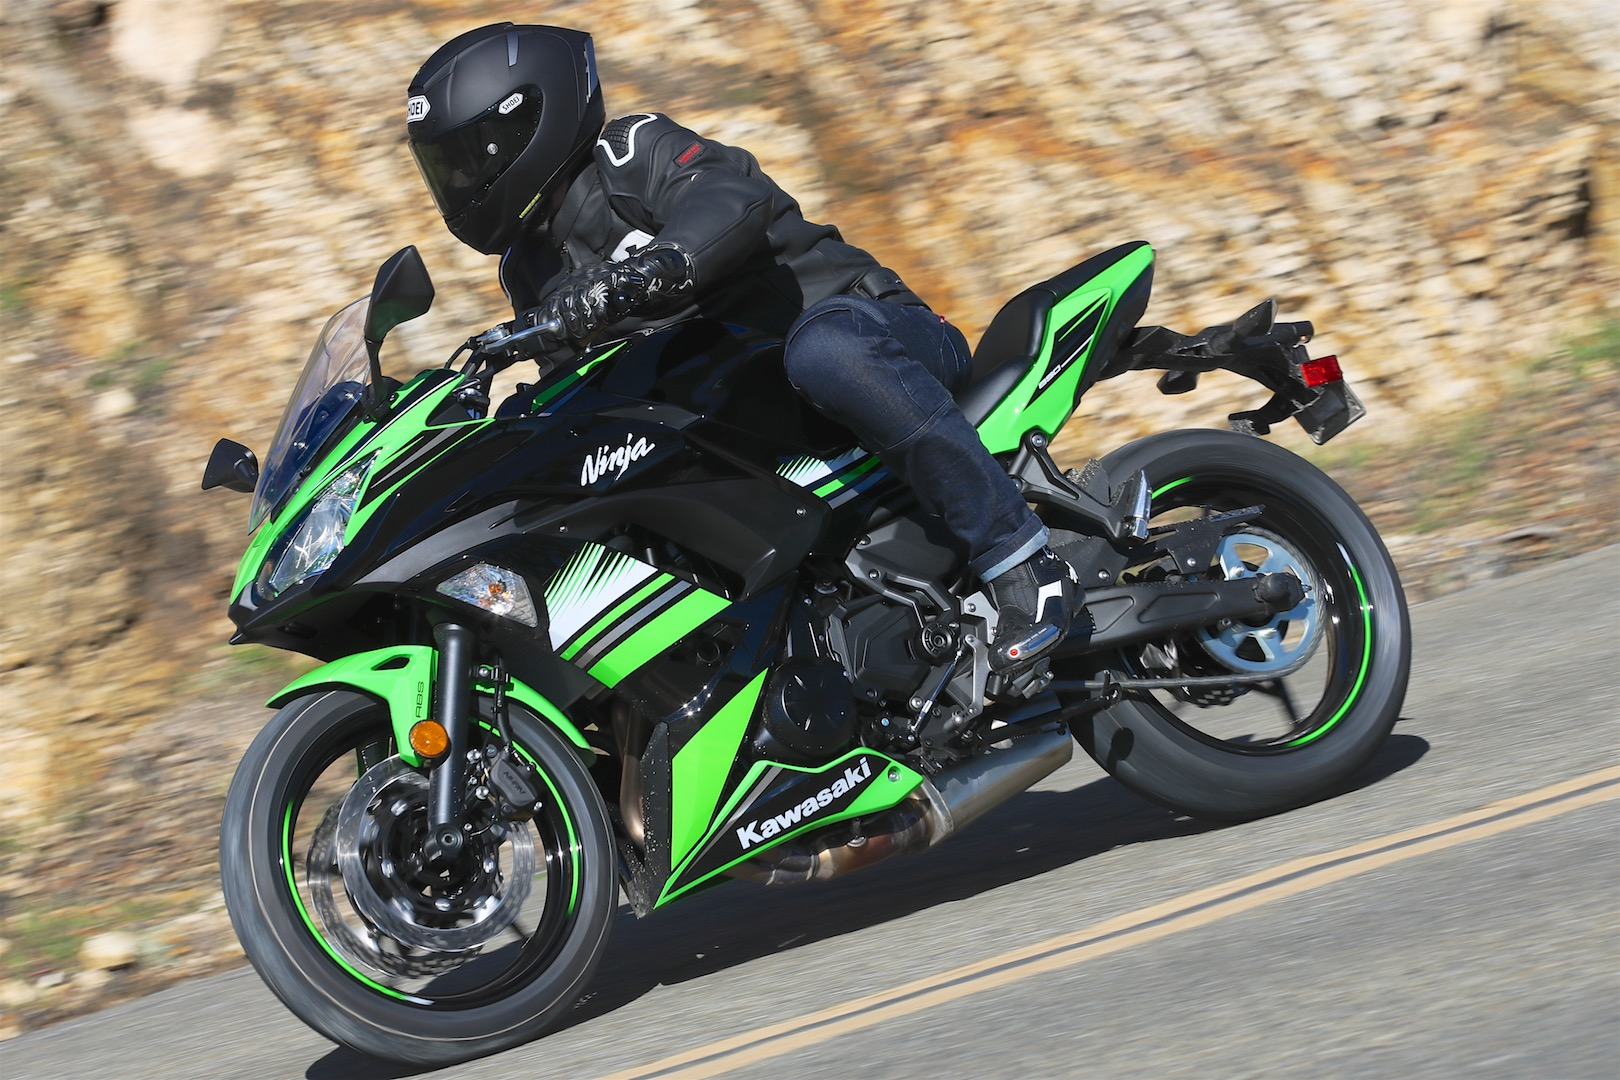 2017 Kawasaki Ninja 650 Review | Friendlier Than Ever